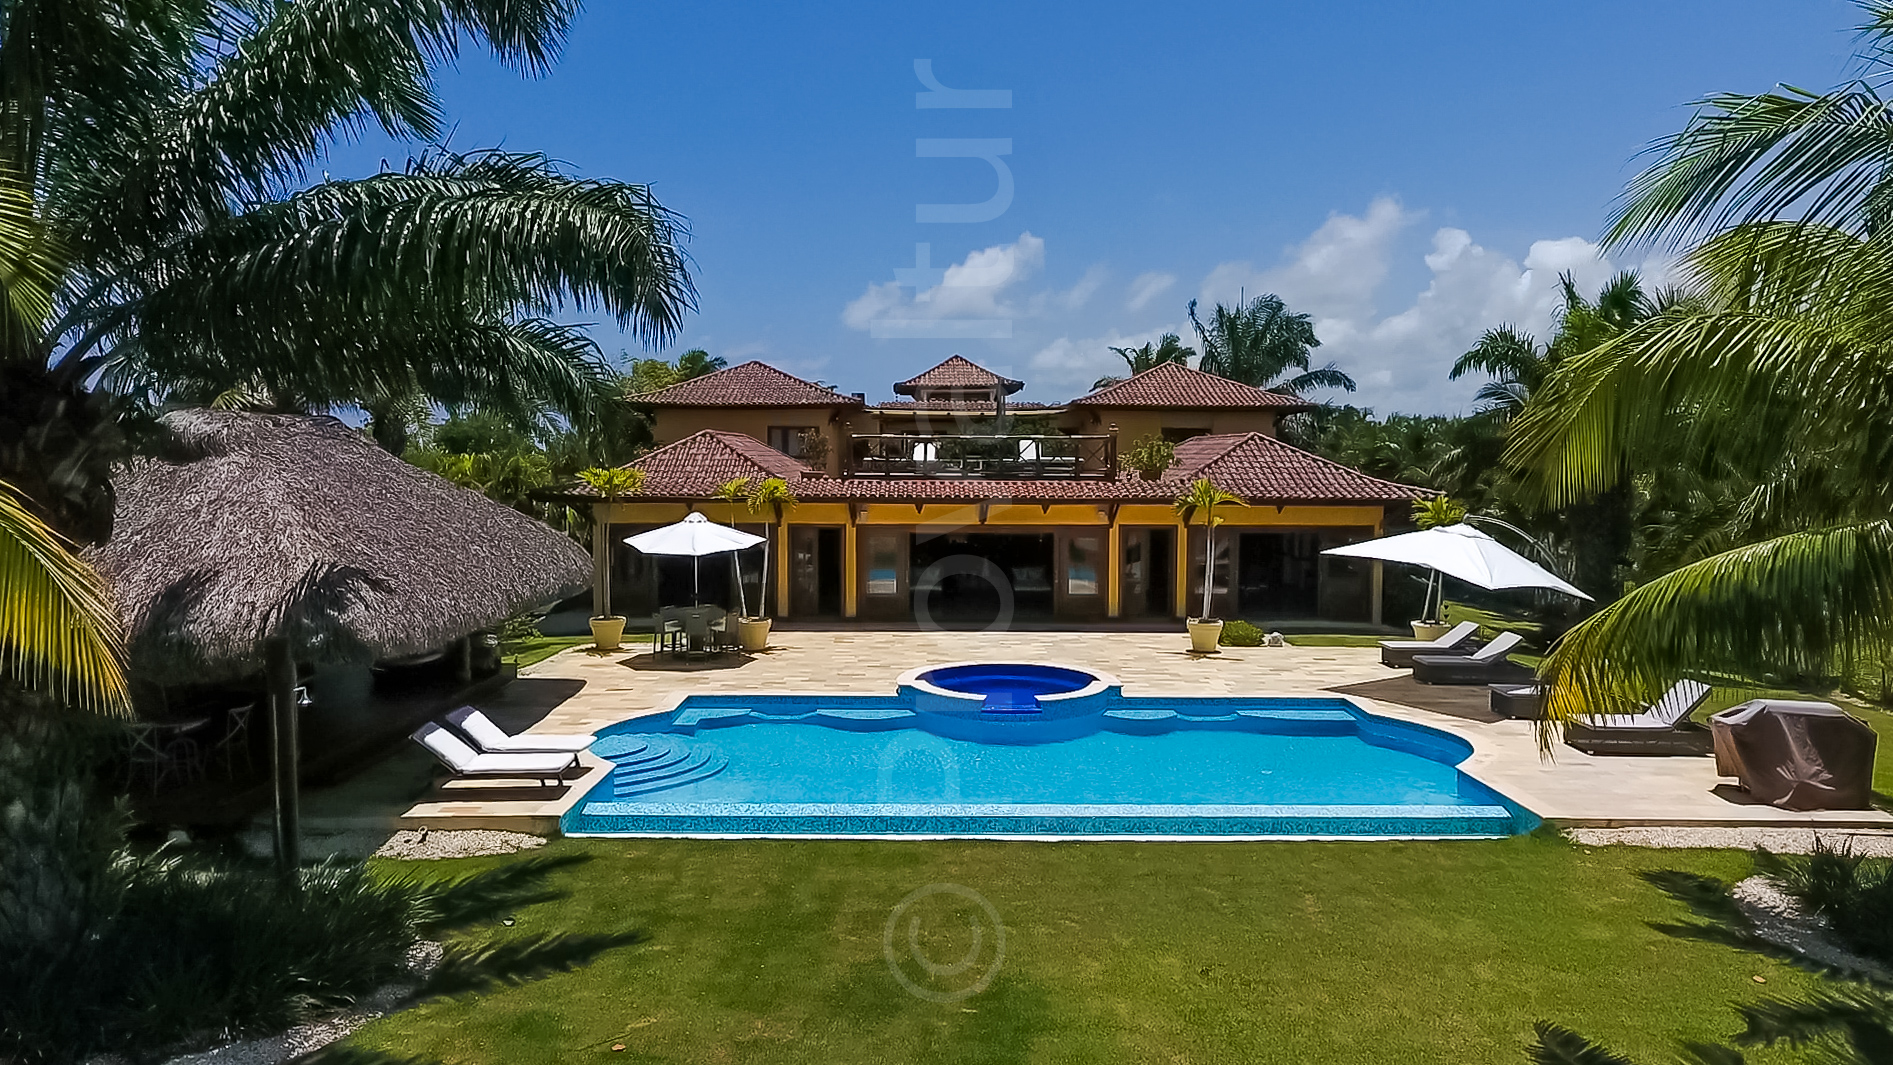 Pool Kaufen Sale Cap Cana Real Estate And Homes For Sale Christie 39s